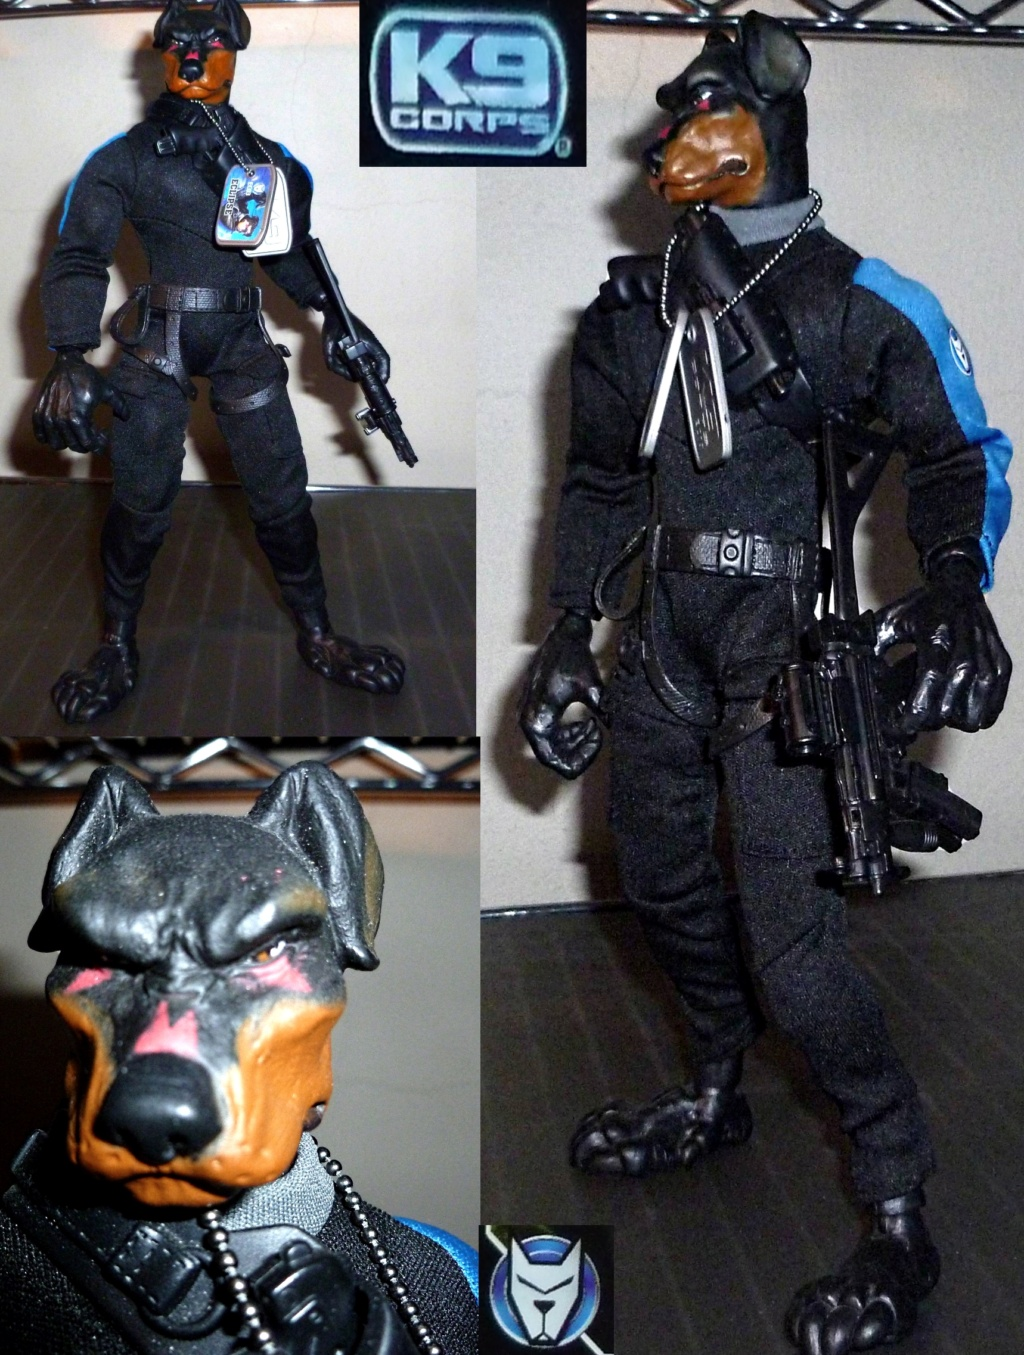 The K9 Corps: REBOOT Special! Eclips10